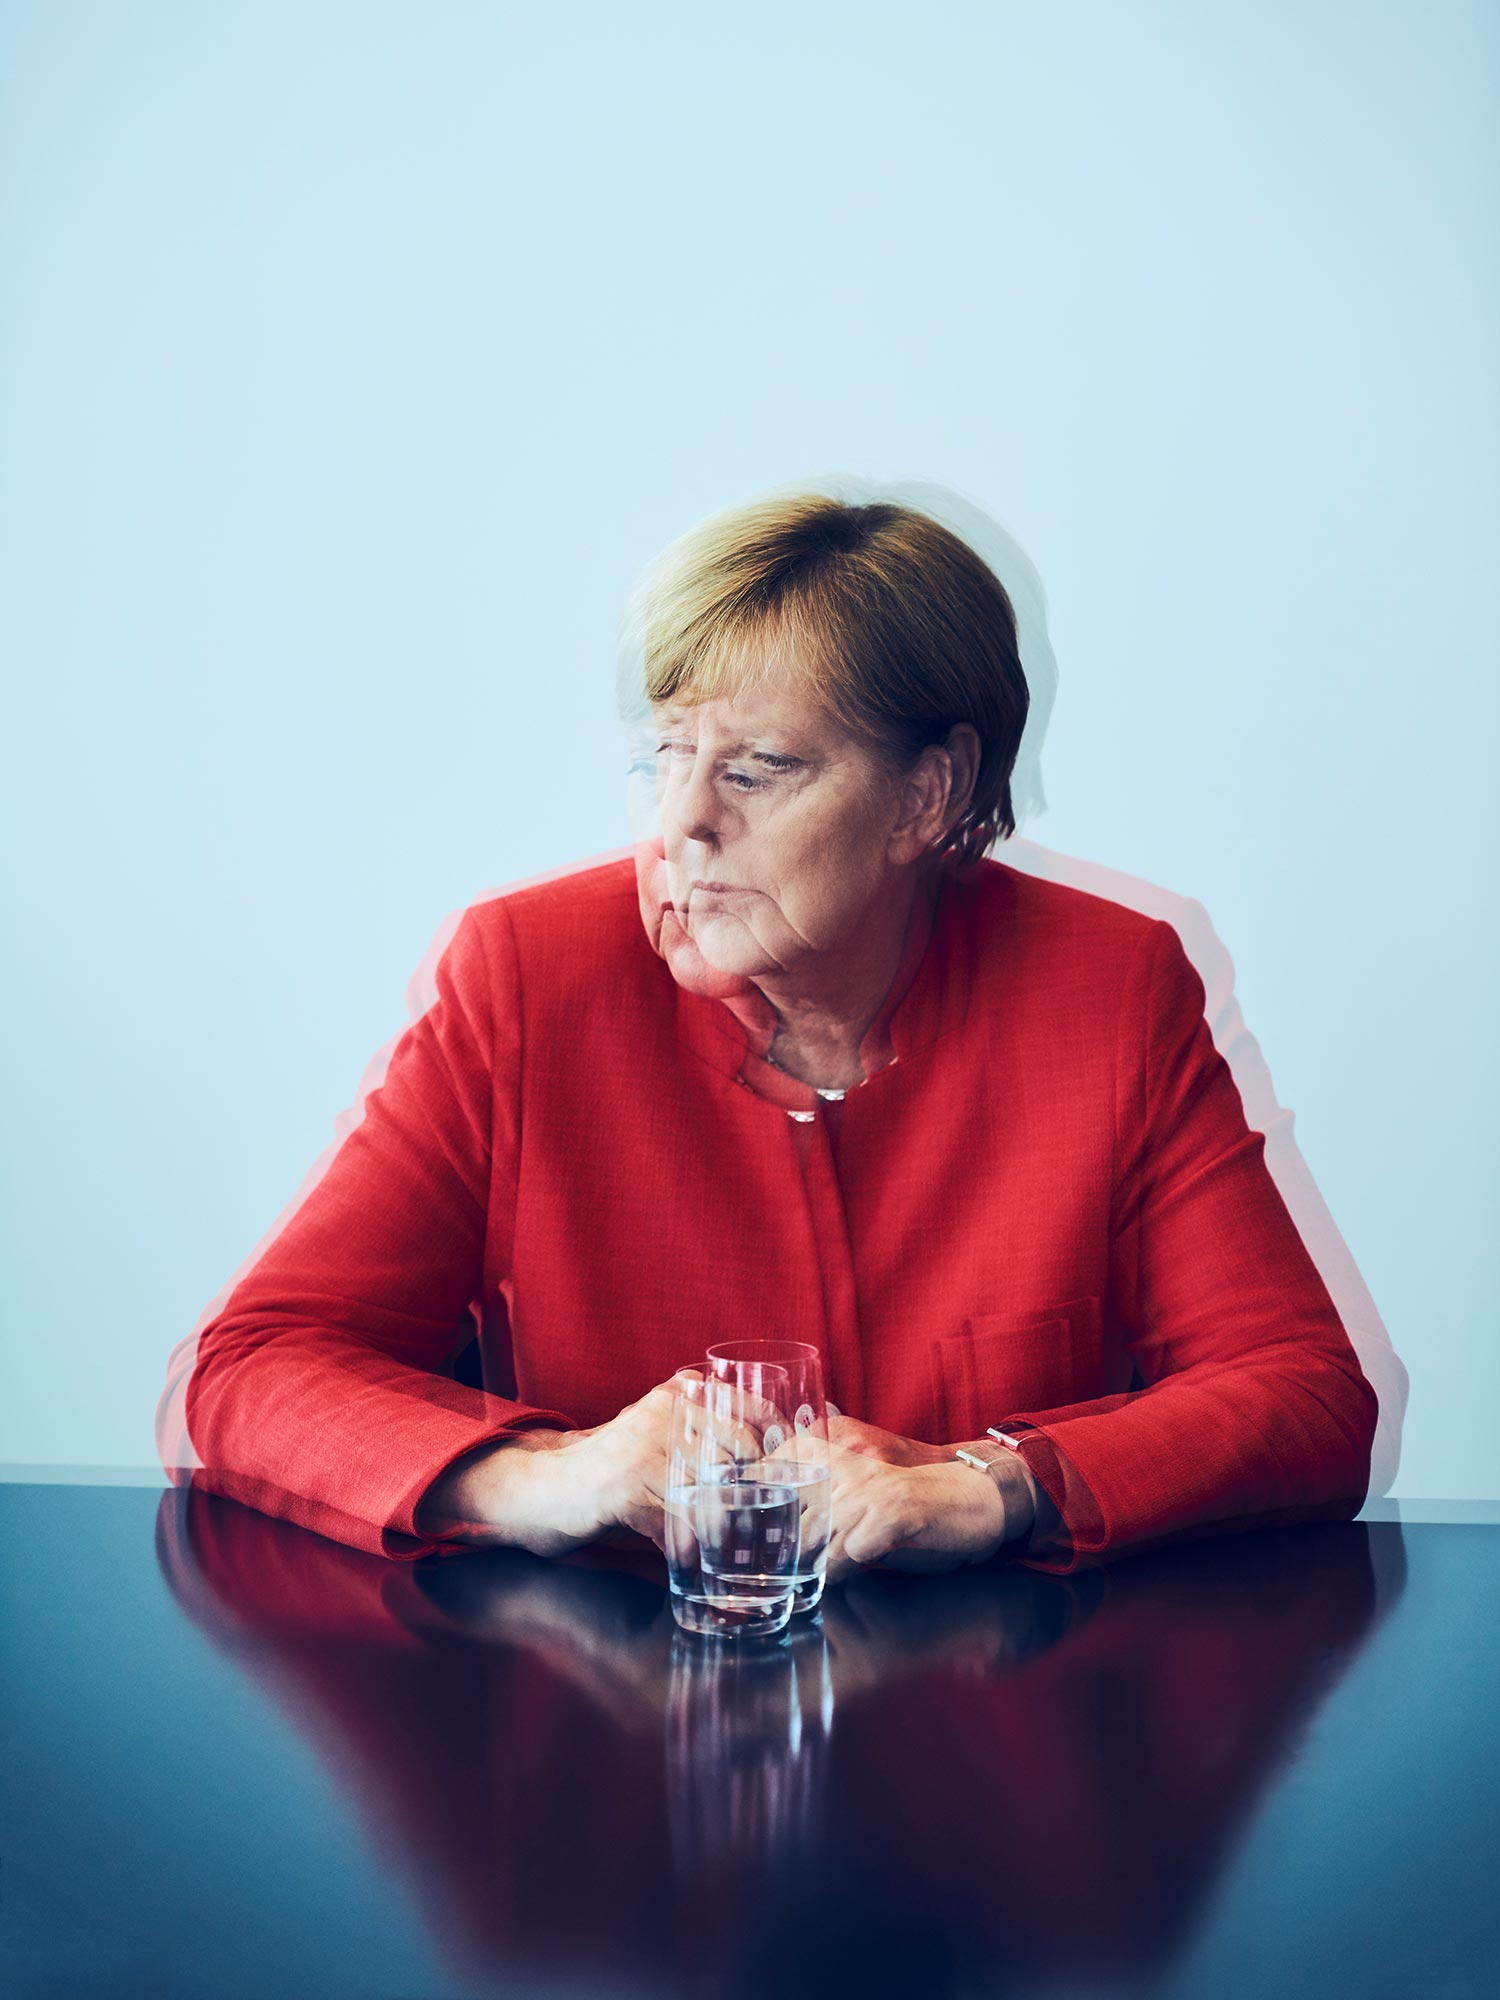 urban zintel photography — angela merkel v